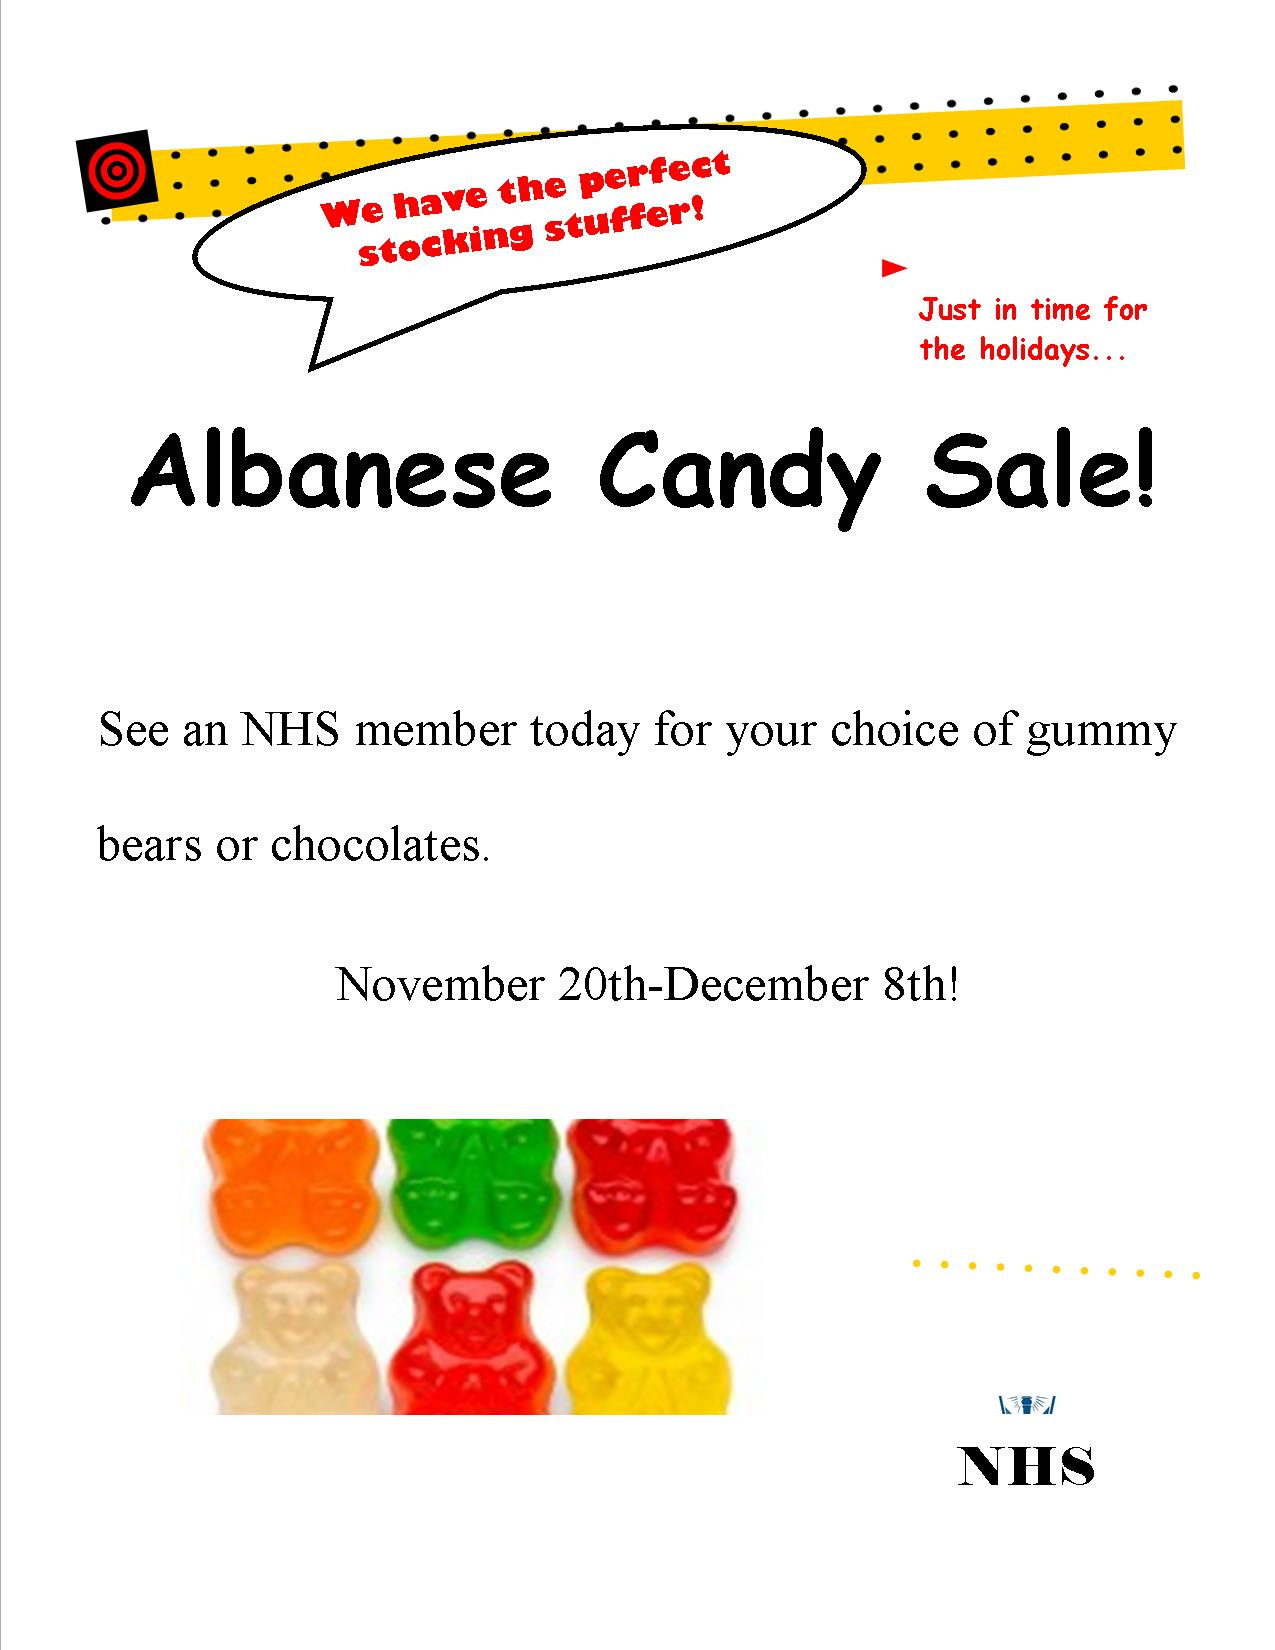 Albanese Gummy Candy Fundraiser